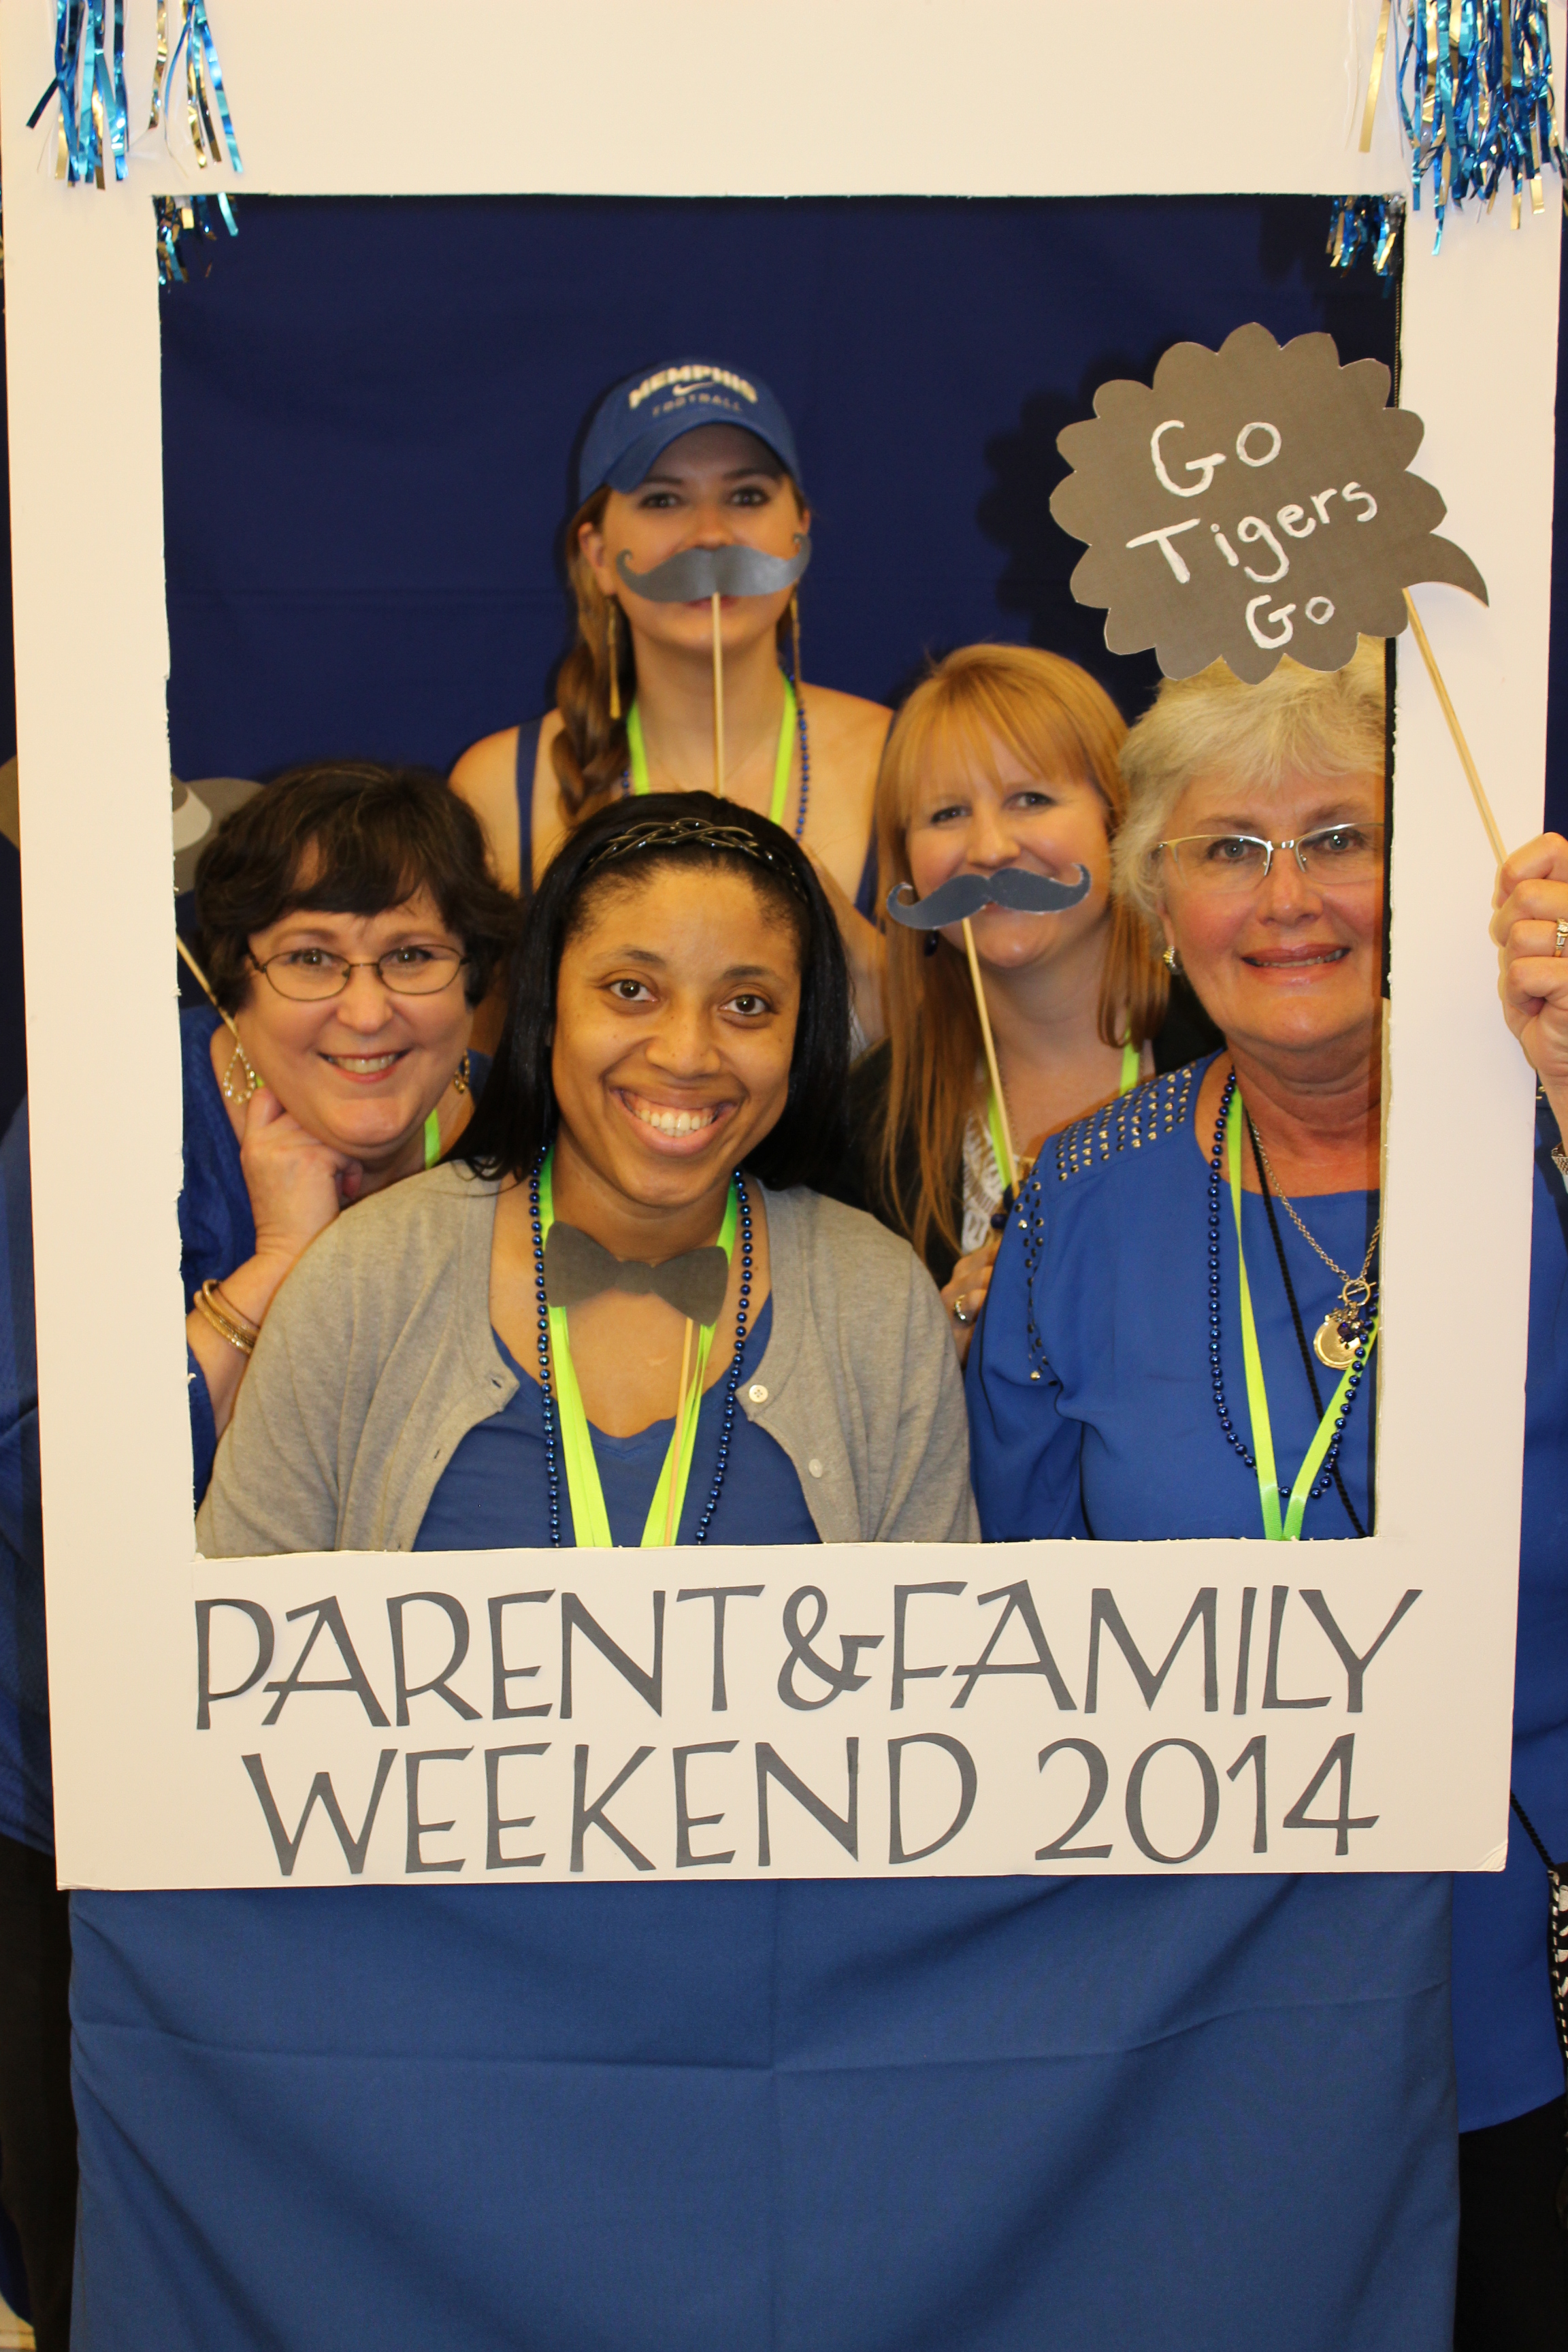 Staff Parent & Family Weekend